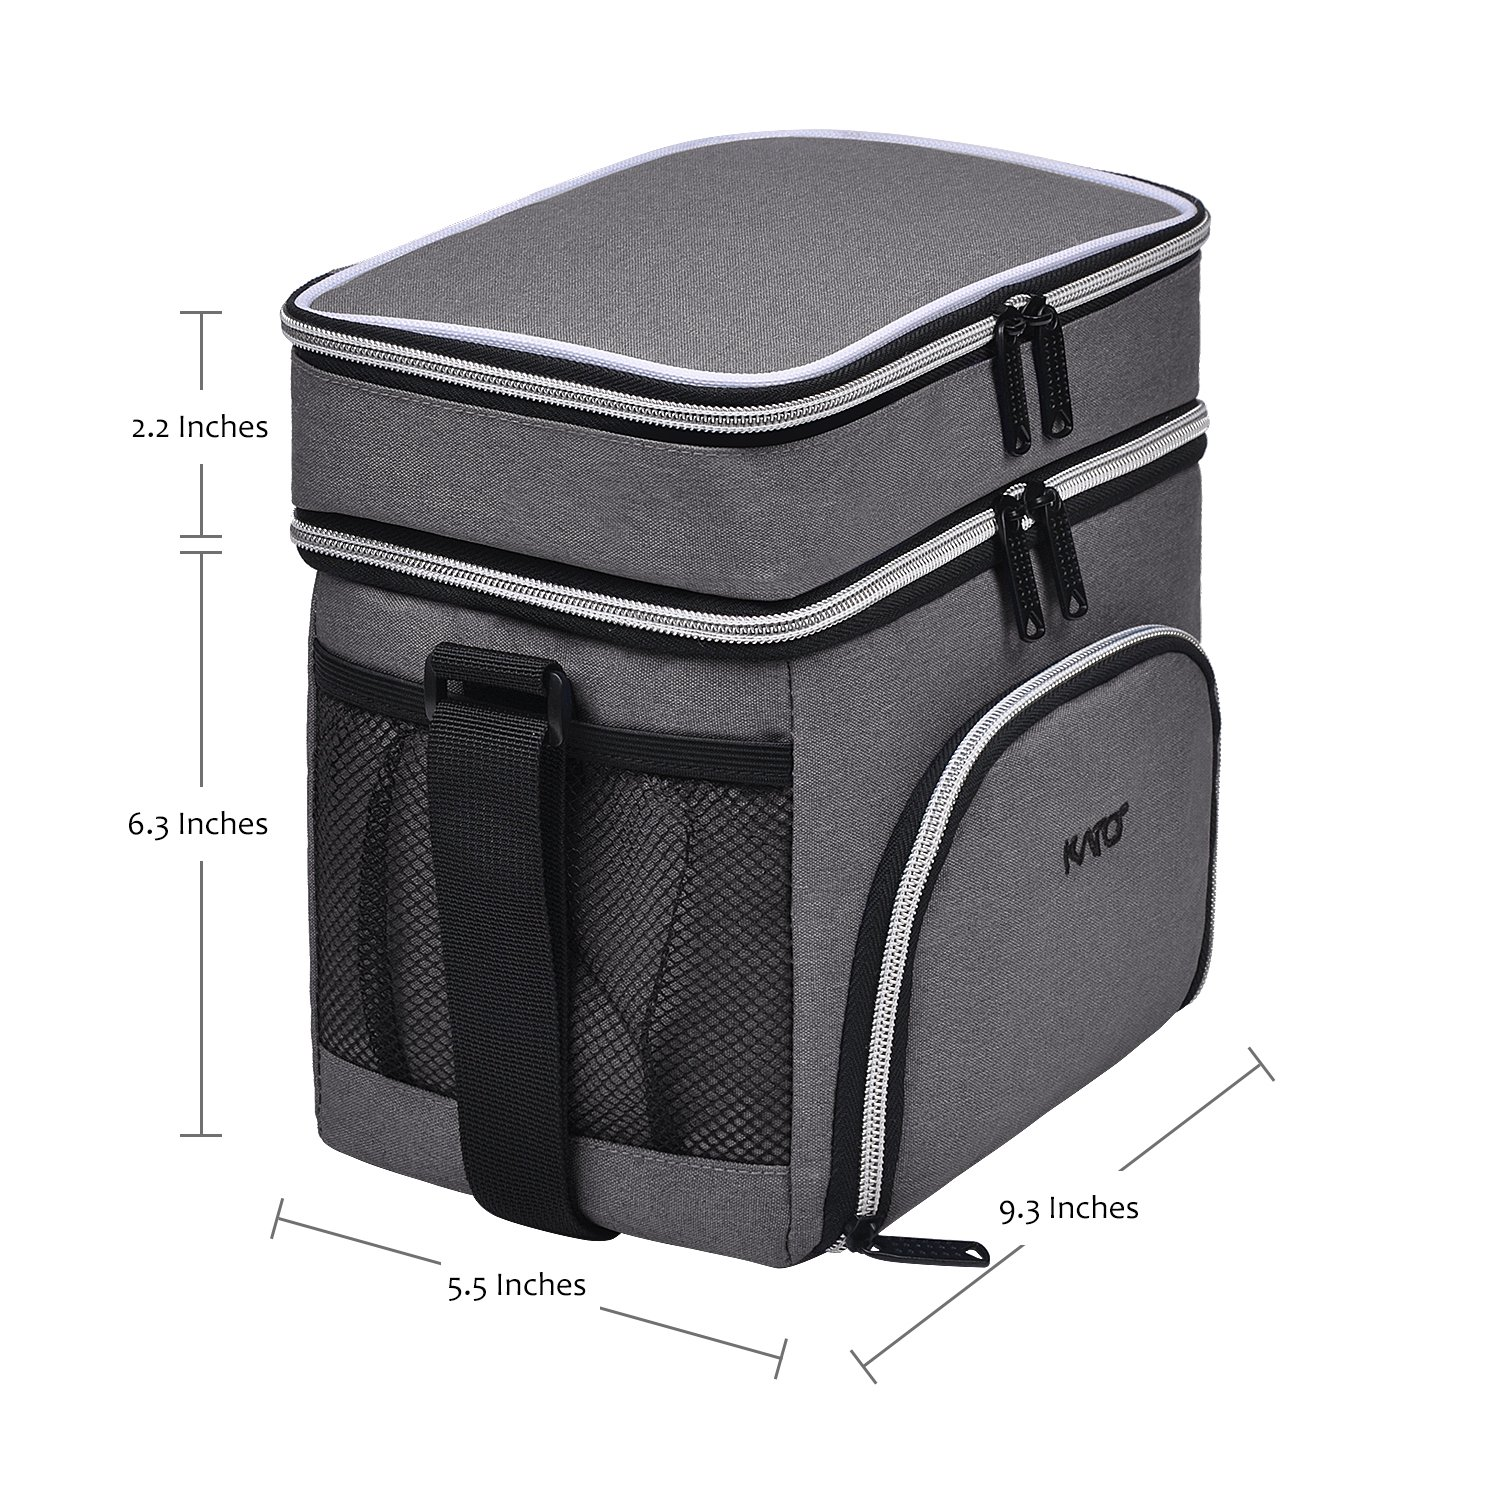 Kato Insulated Lunch Bag, Leakproof Bento Cooler Lunch Box Tote, Dual Compartment Thermal Lunch Bag with Shoulder Strap for Men & Women, Oxford Cloth, Gray